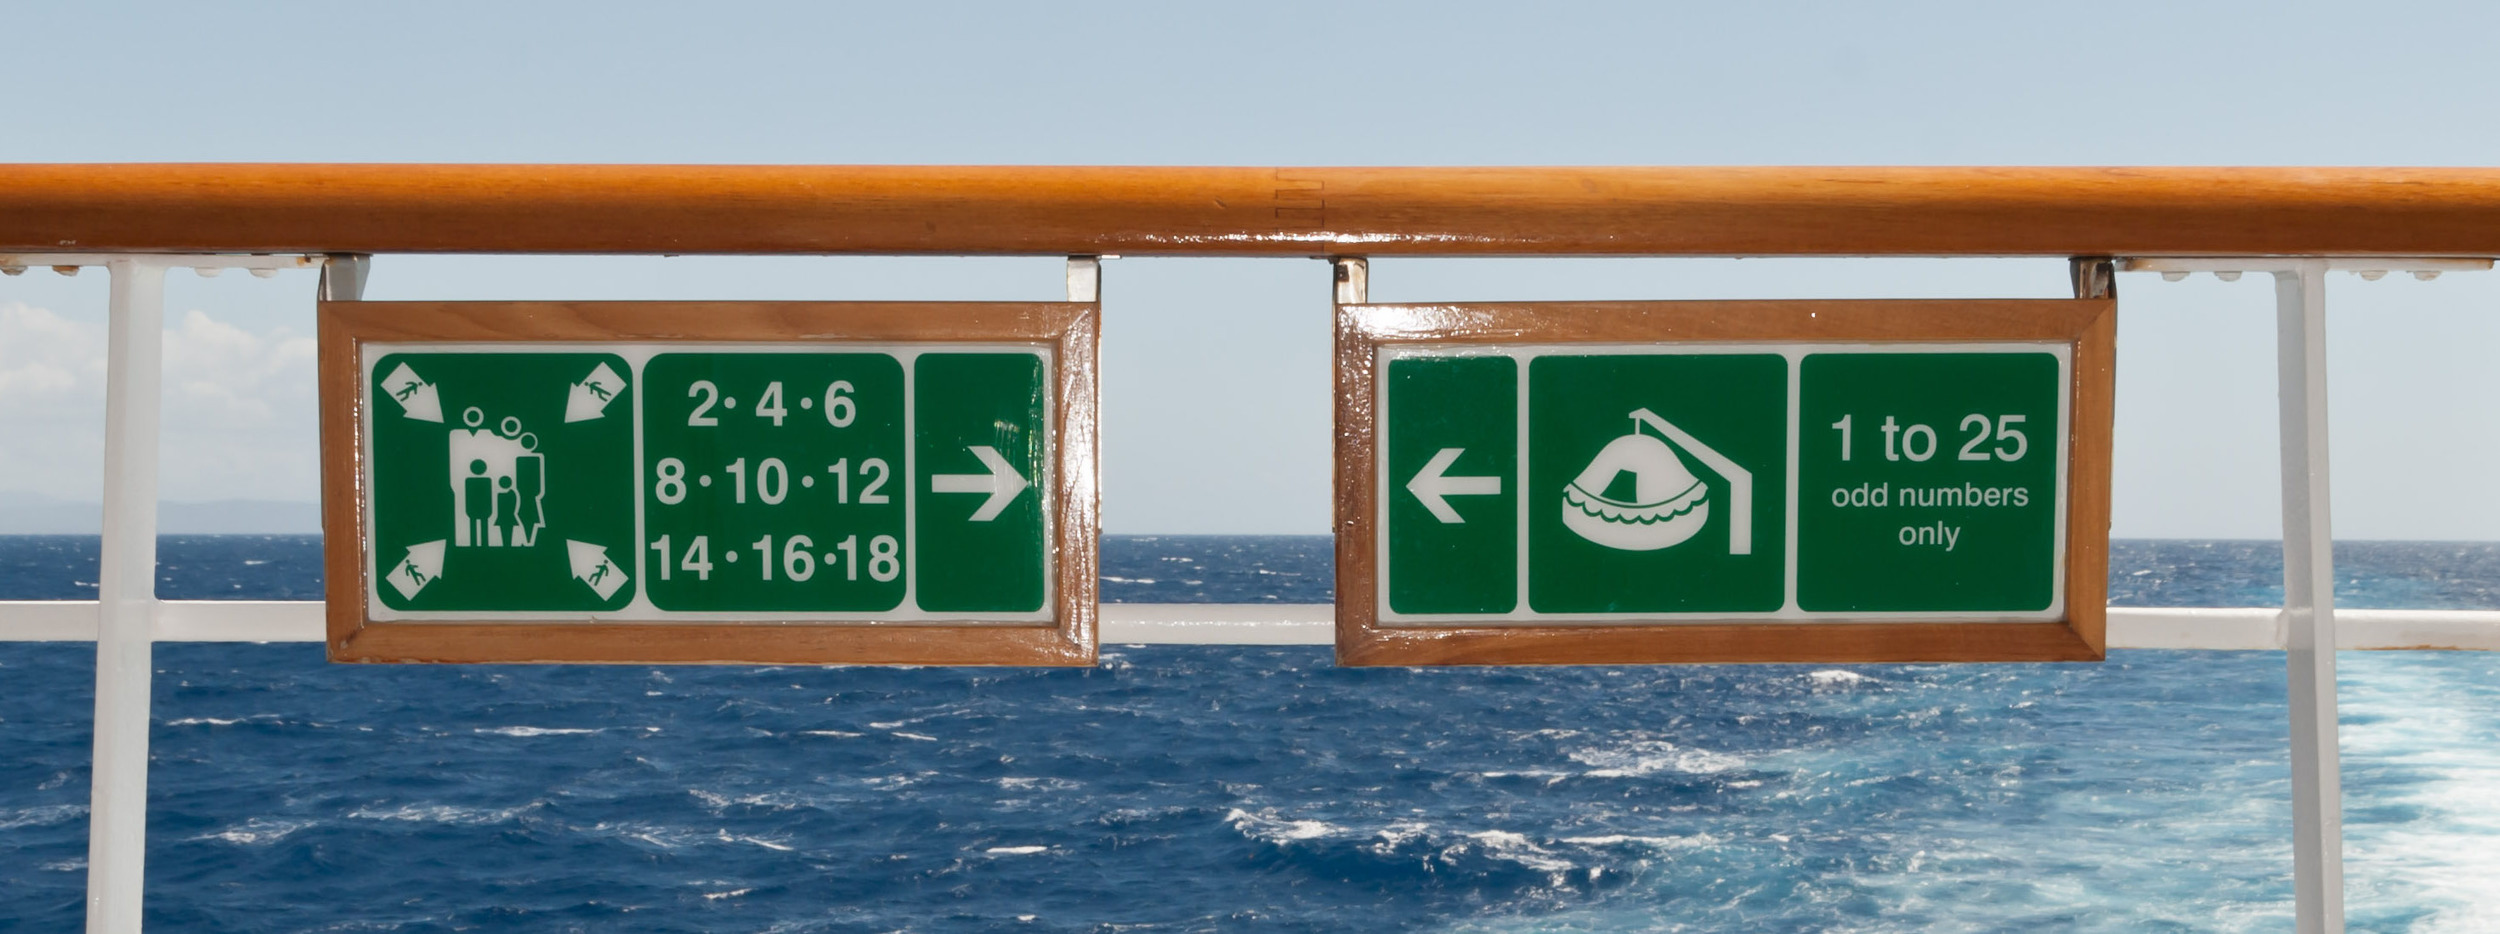 Cruise signs. Photo by Kevin Dern.